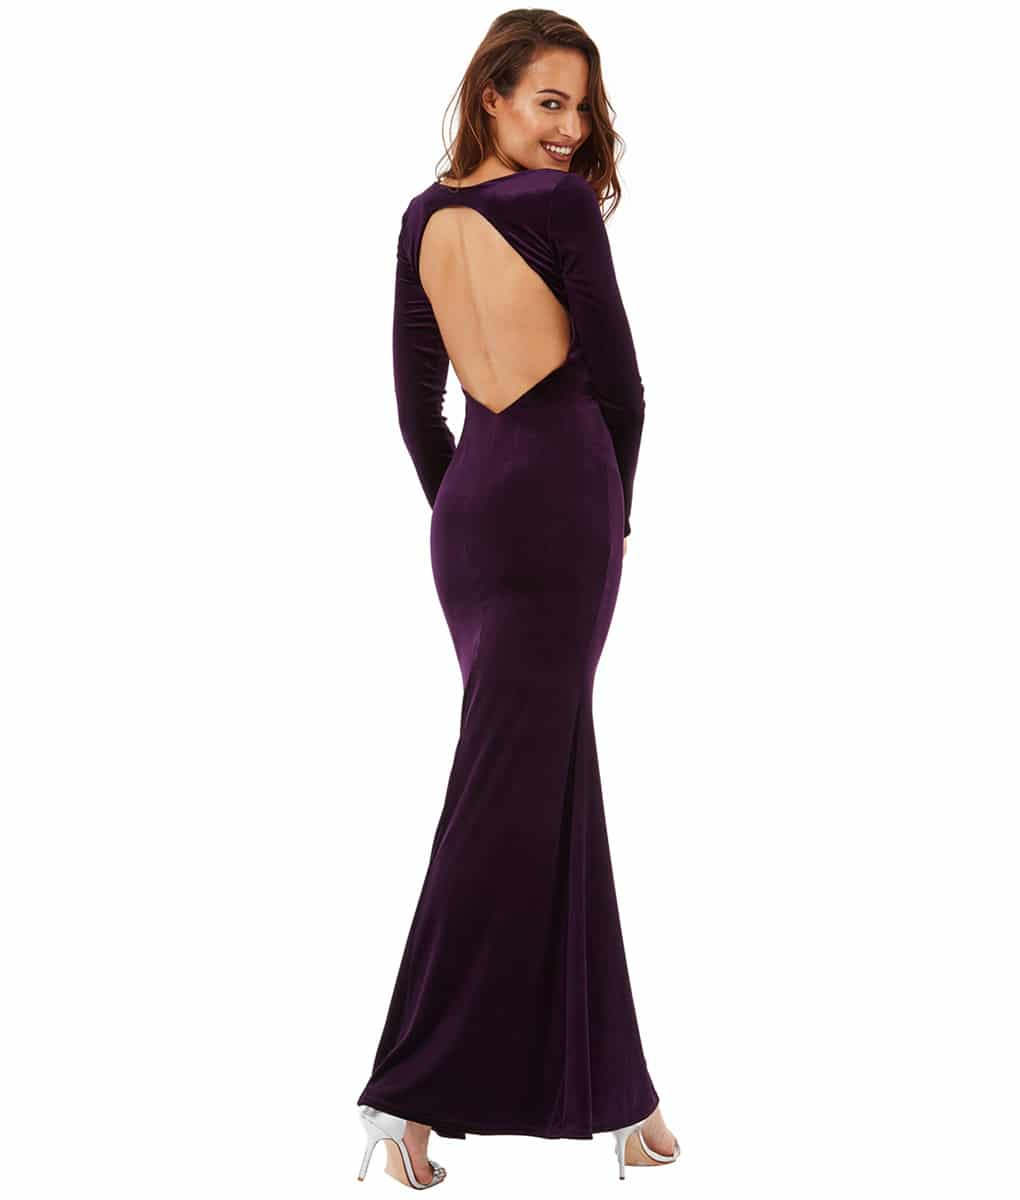 Alila-Plum-Velvet-open-back-long-dress-City-Goddess